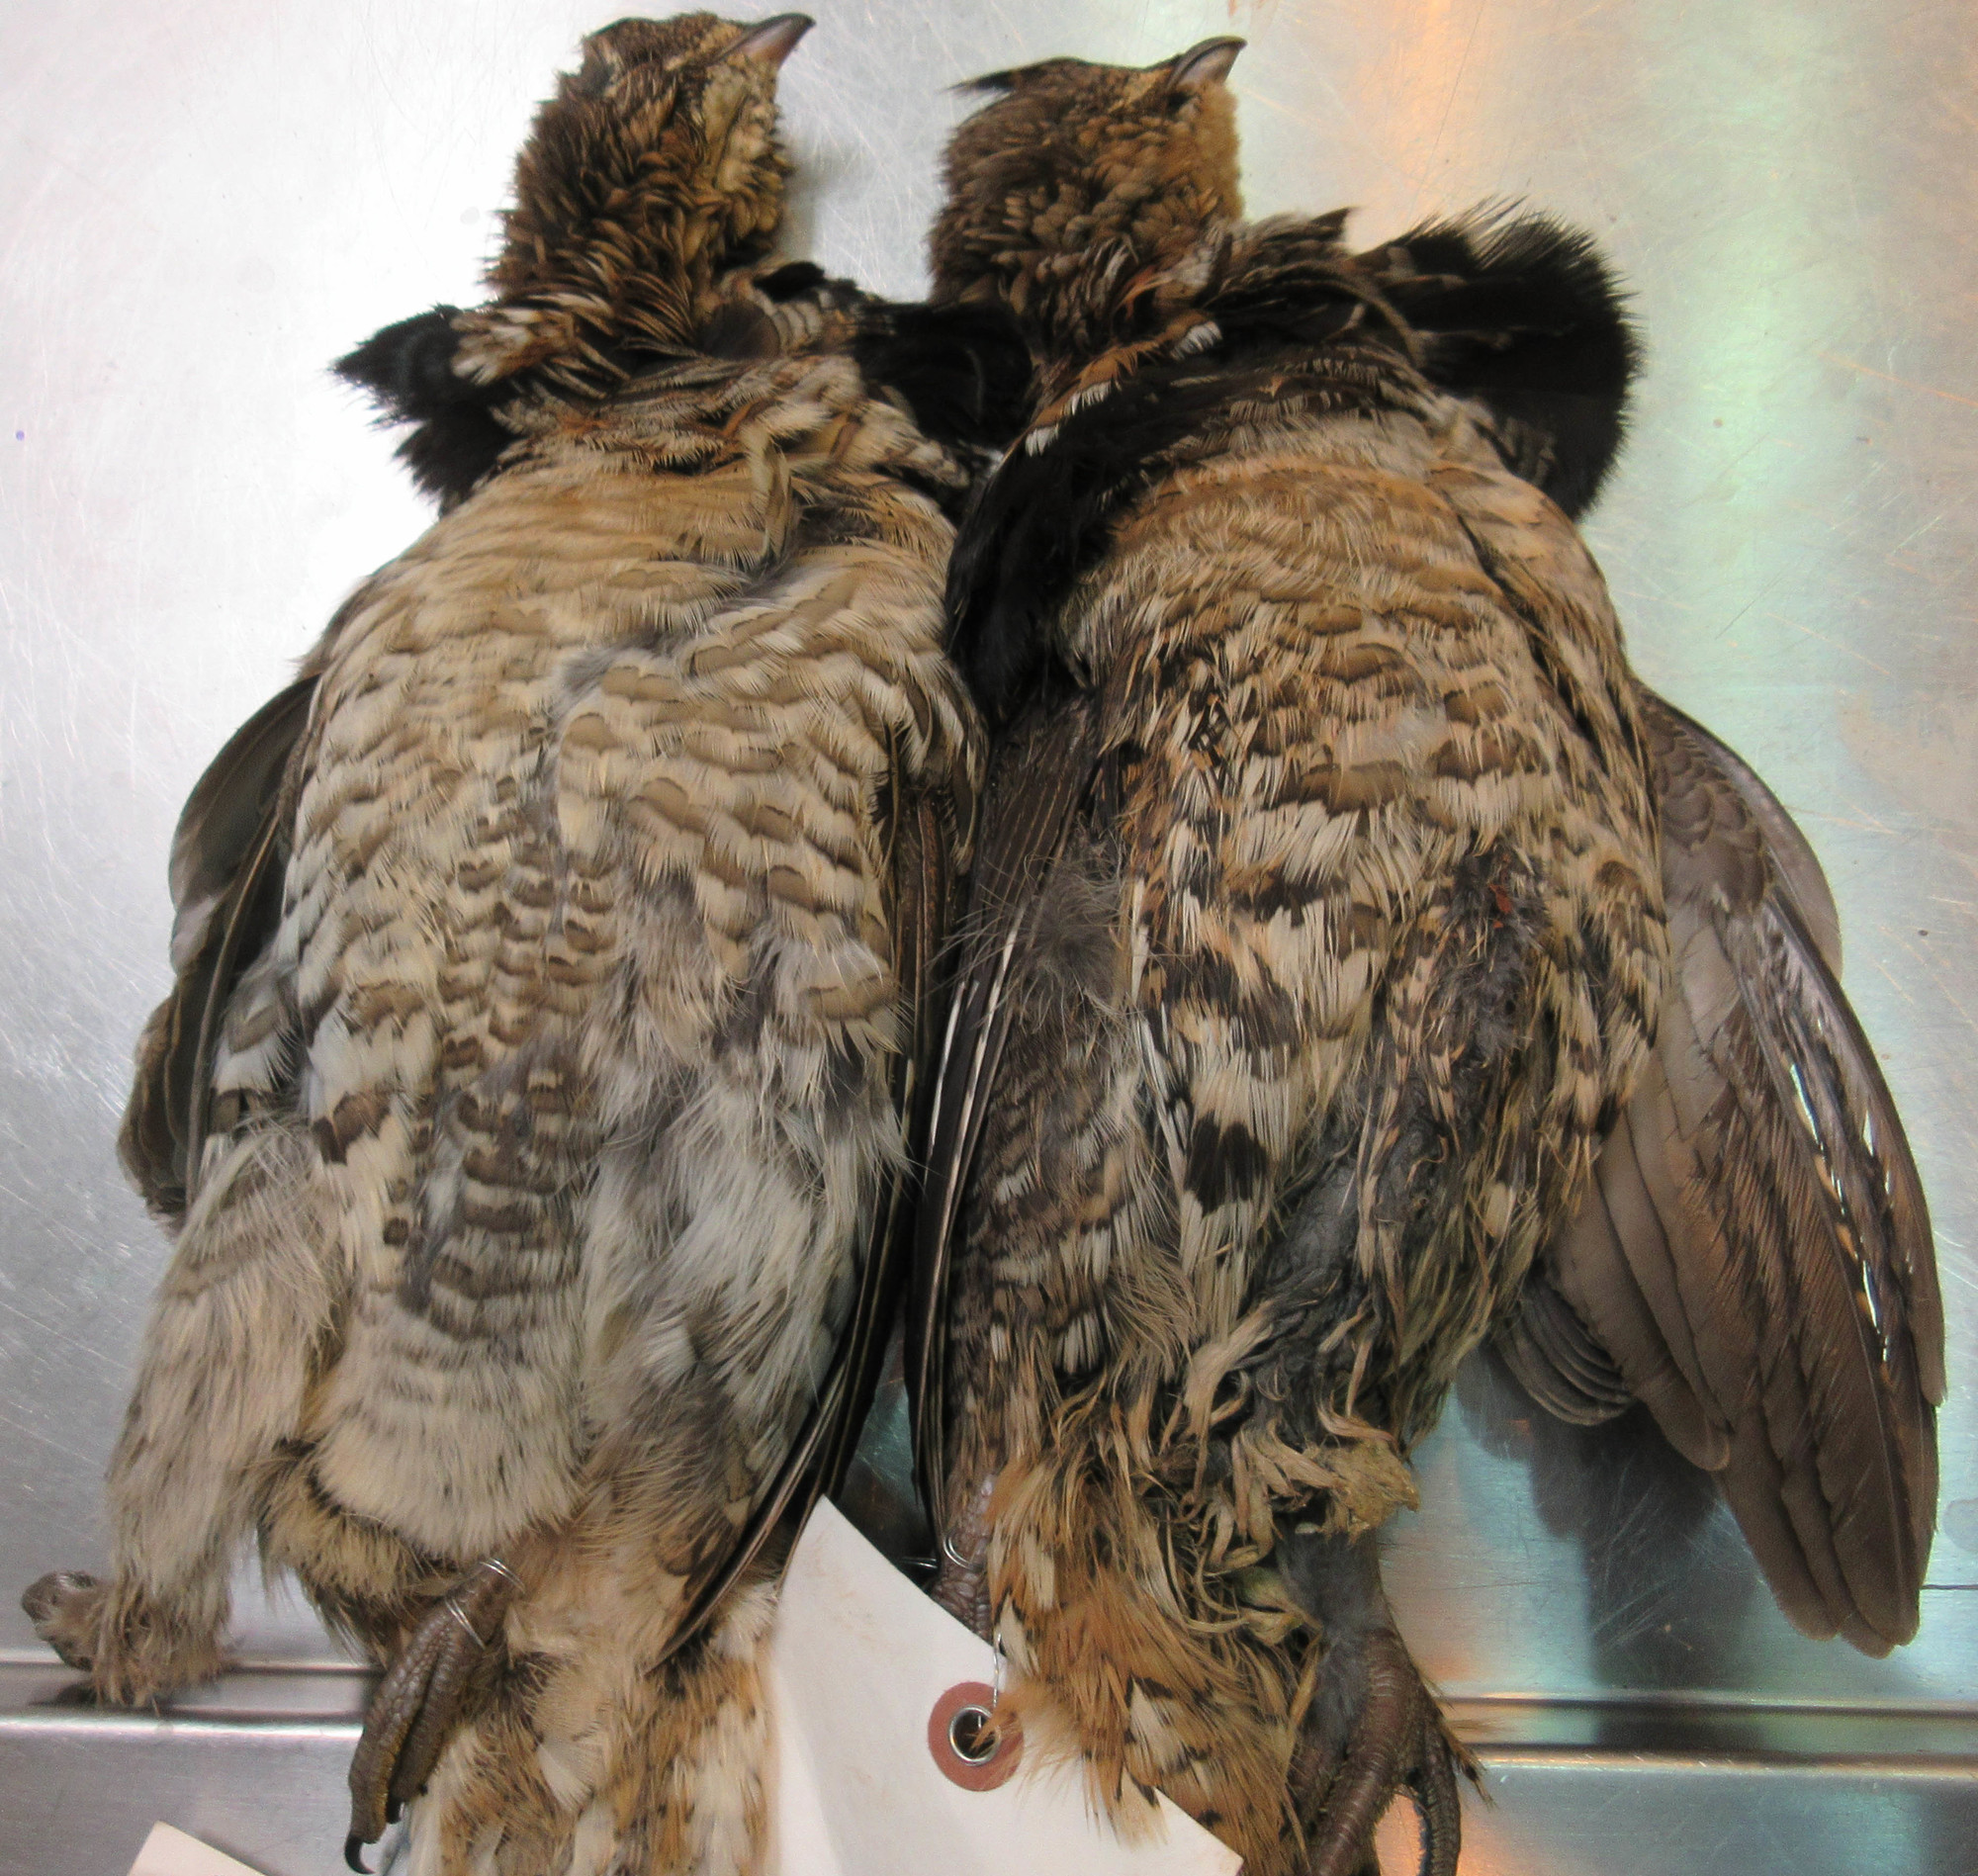 Two grouse submitted to the Michigan Department of Natural Resources' Wildlife Disease Lab in Lansing for testing for West Nile Virus.